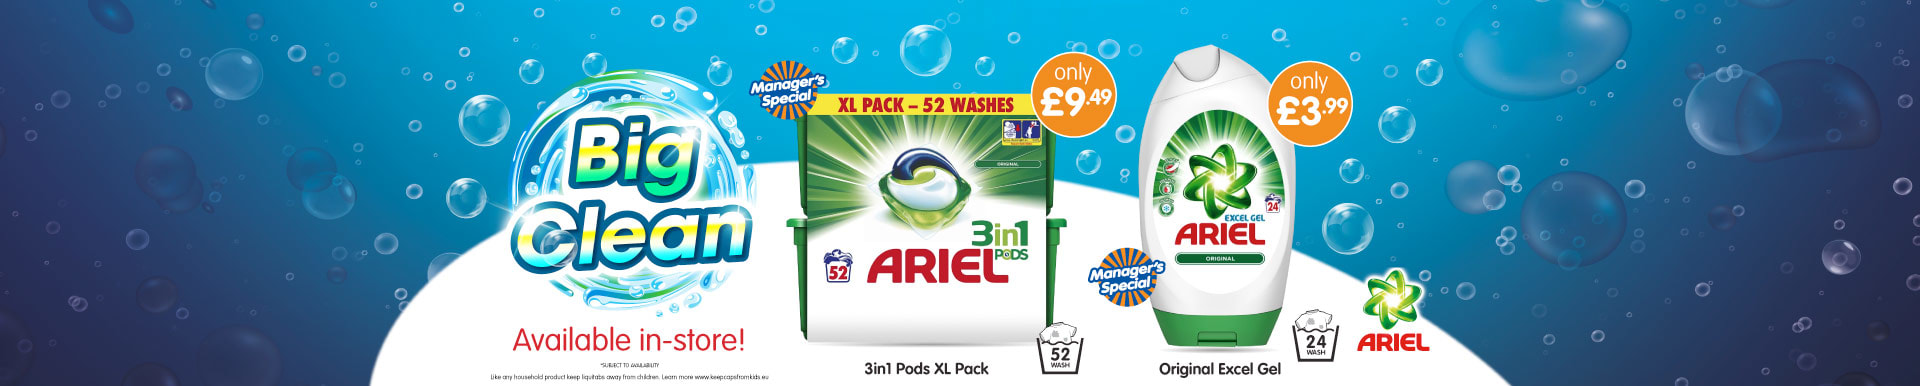 Save on Ariel at B&M.